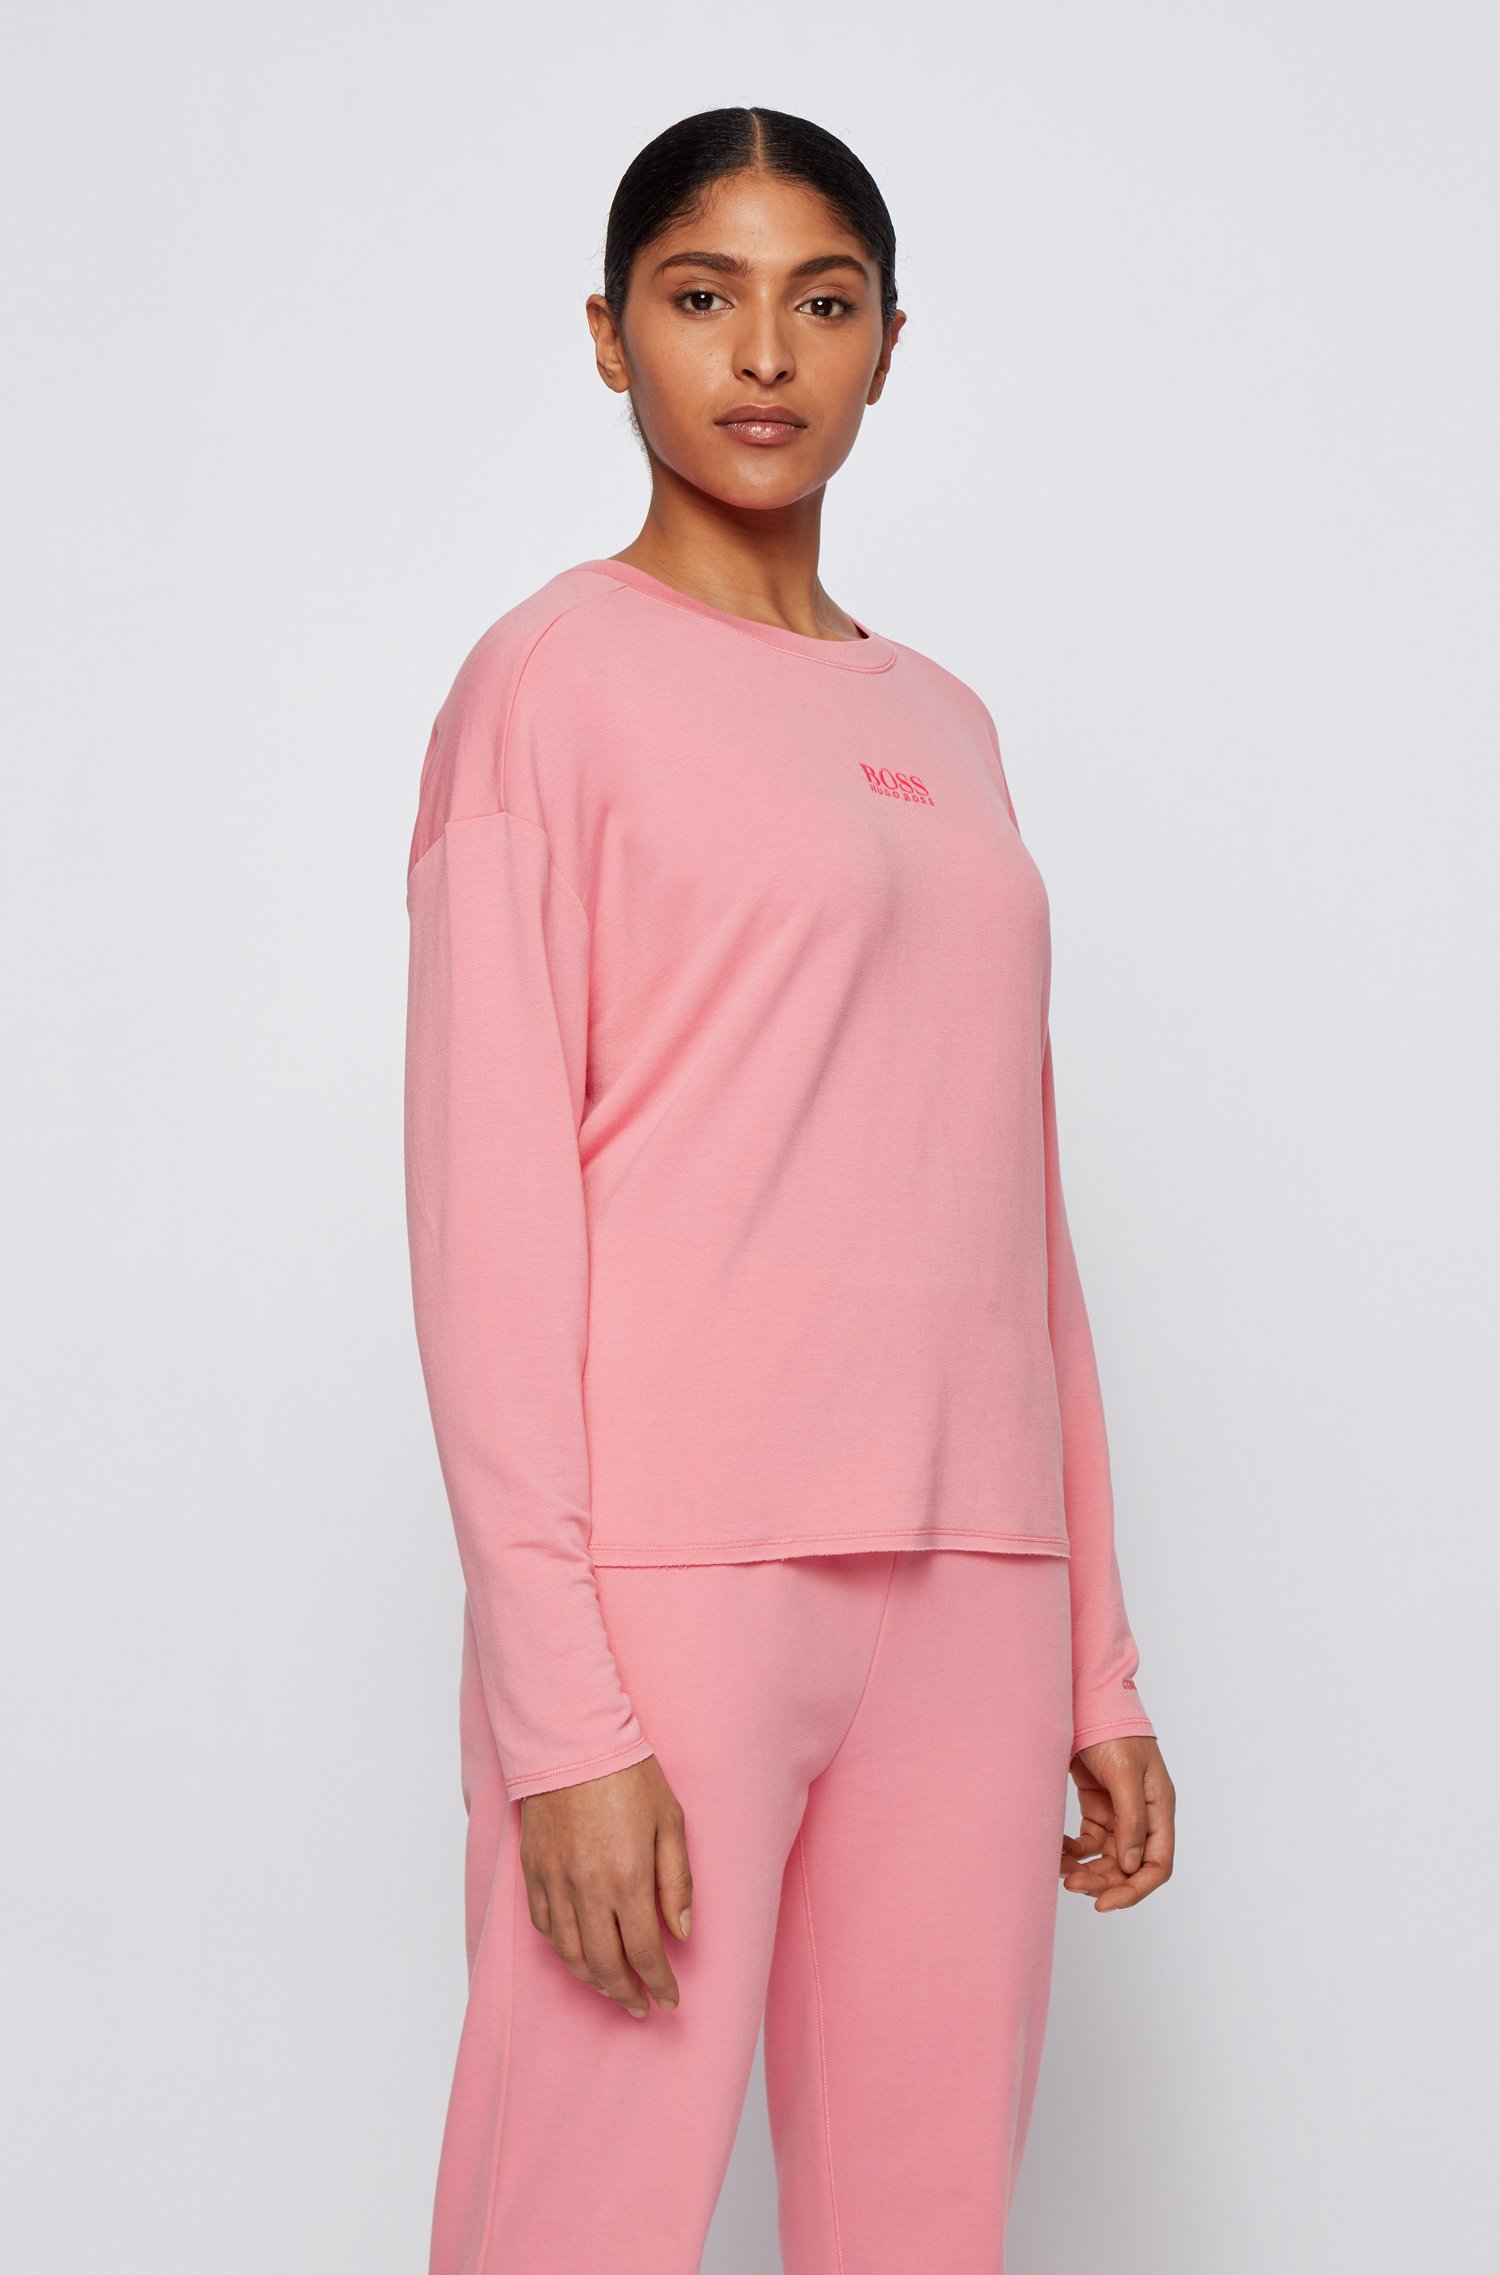 Relaxed-fit sweatshirt in lightweight terry with logo detail, light pink